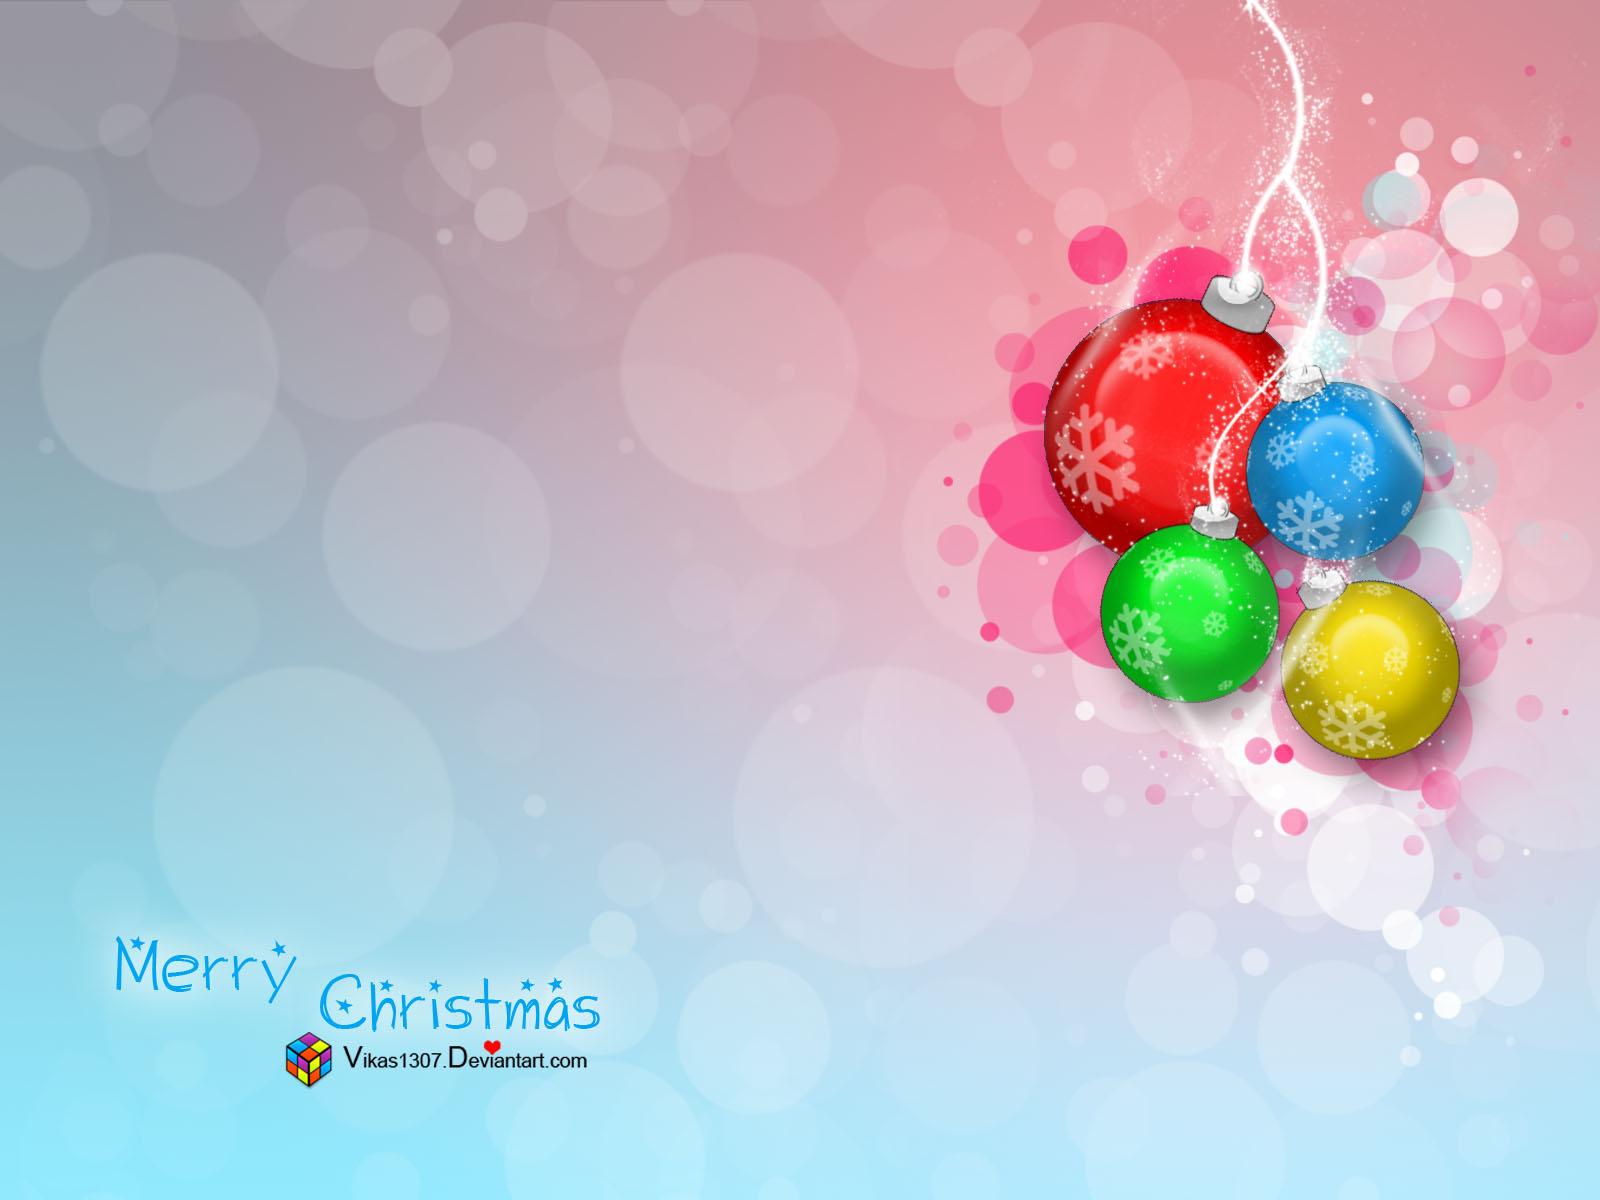 ...:: Merry Christmas :::.... by vikas1307